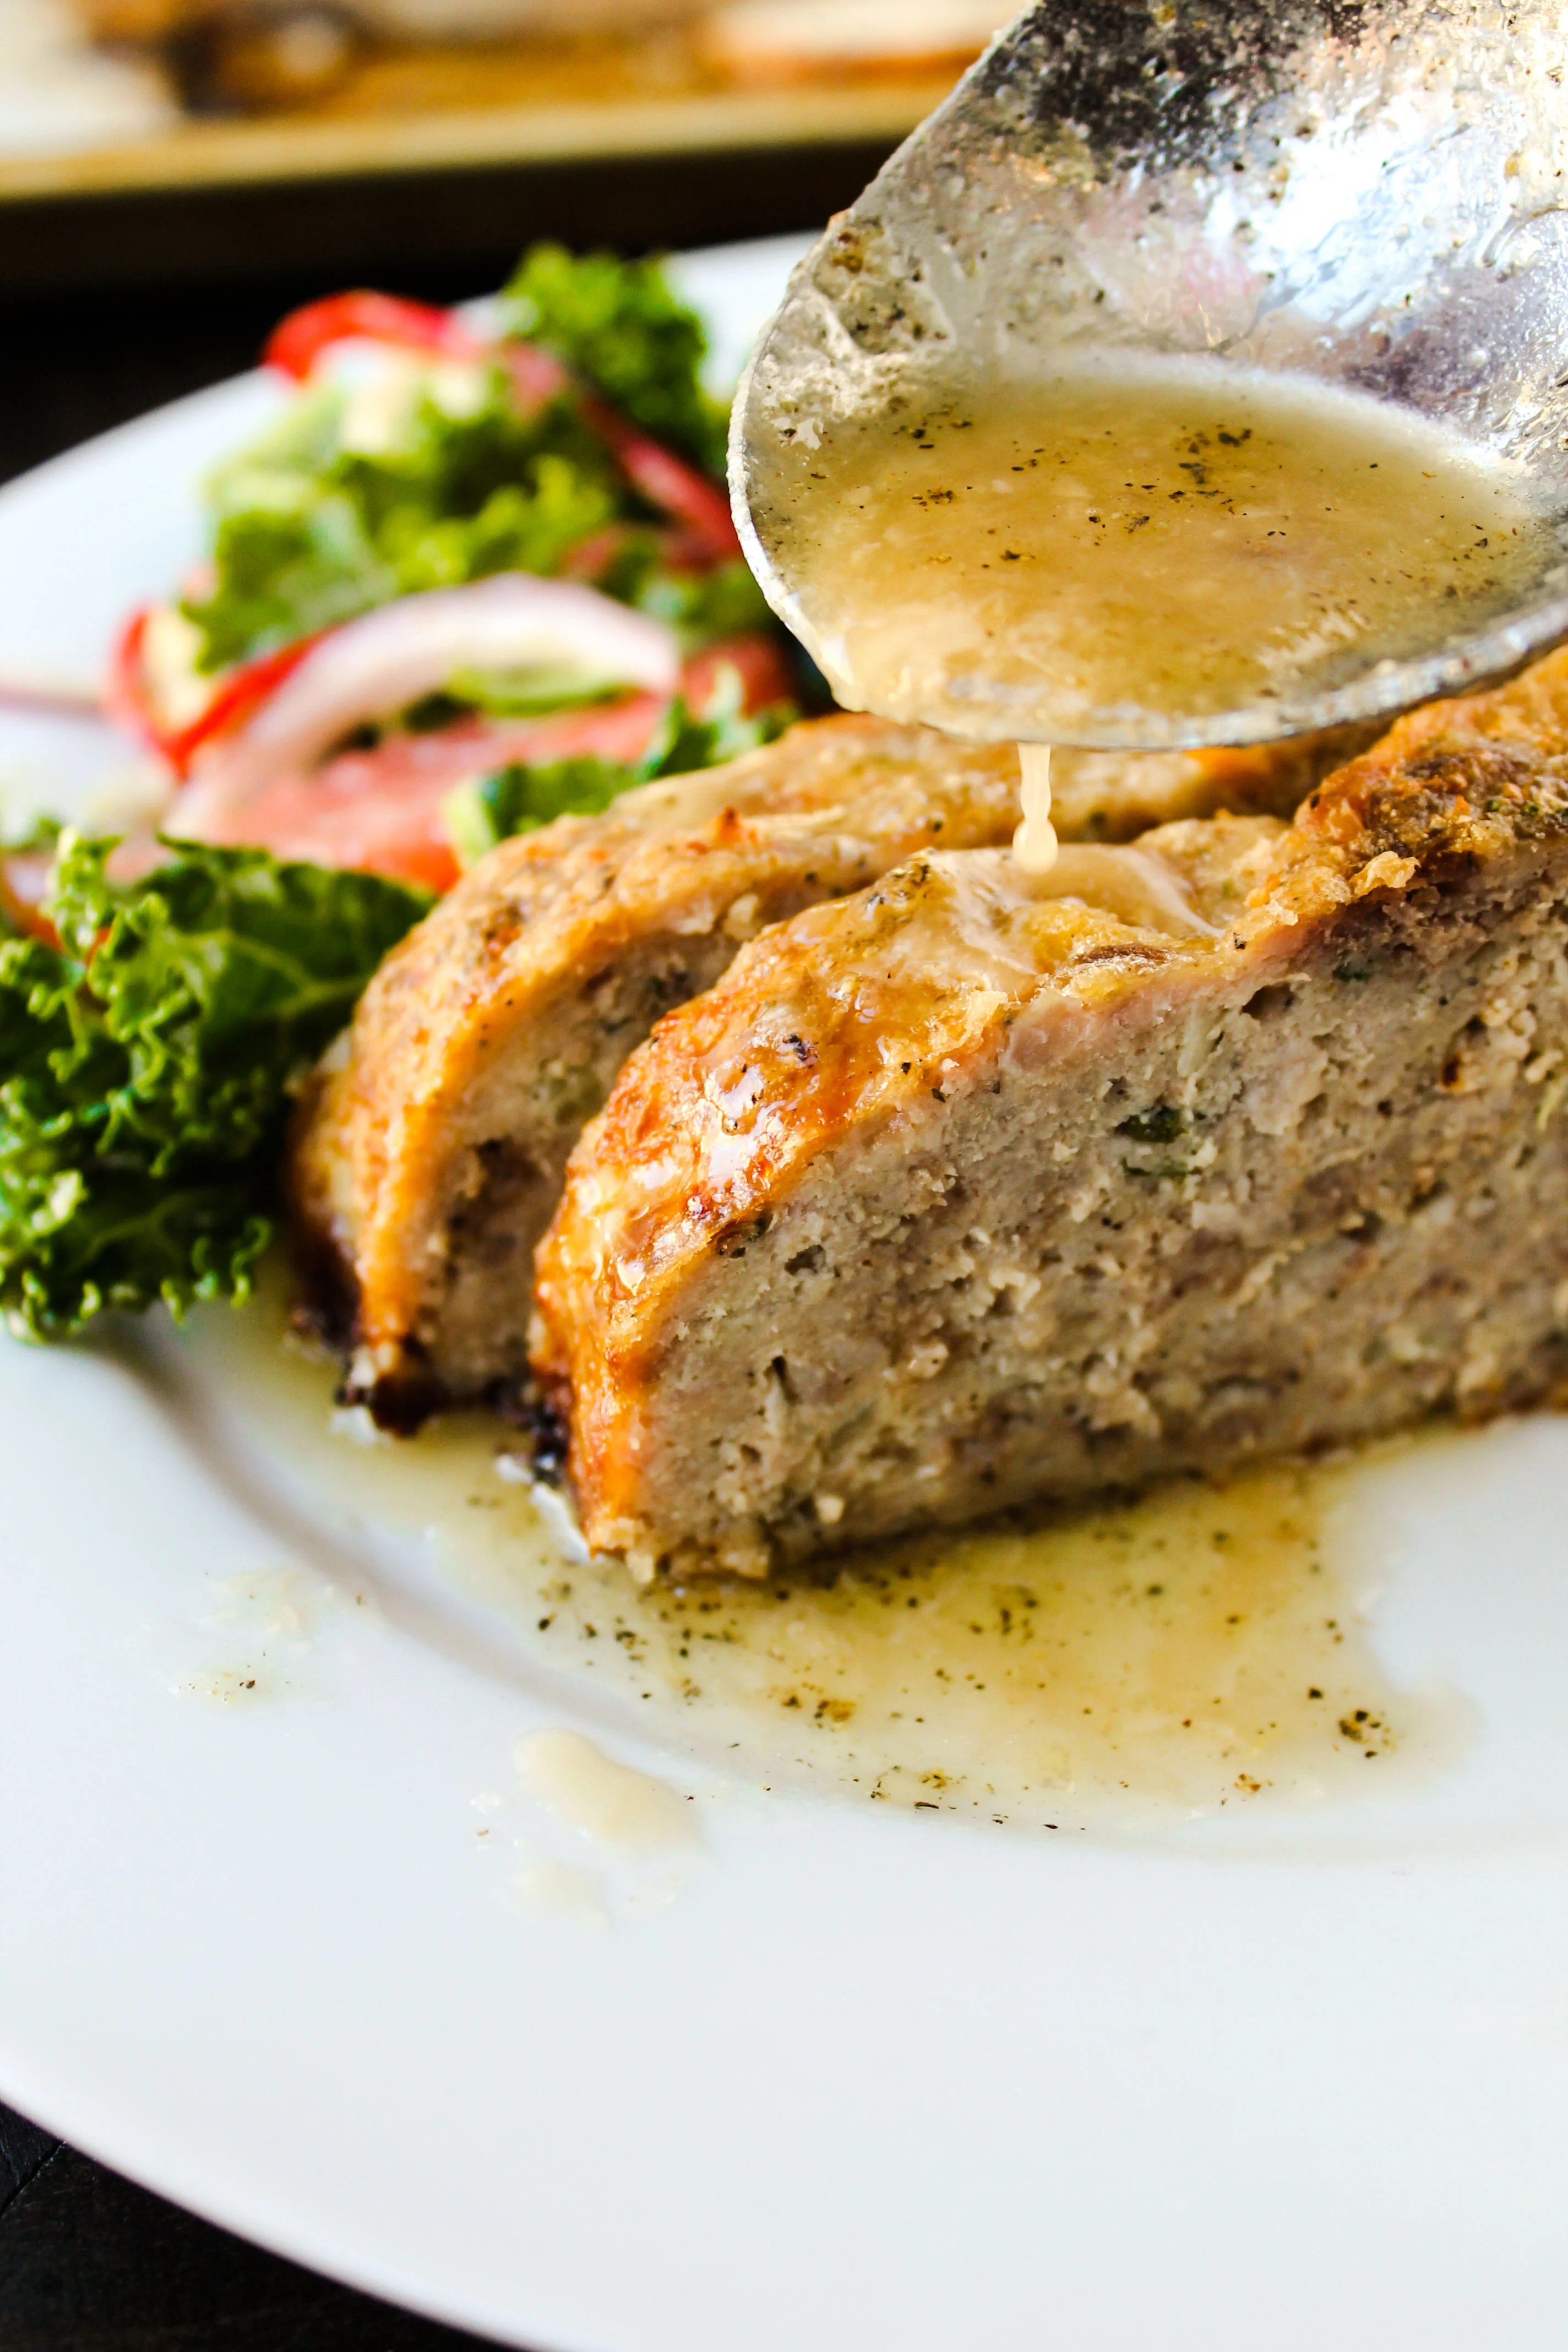 Gracious Meatloaf Ina Garten Meatloaf Garlic Sauce Food Charlatan What To Eat Meatloaf Dinner What Vegetables To Serve Garlic Sauce House Meatloaf nice food What To Serve With Meatloaf